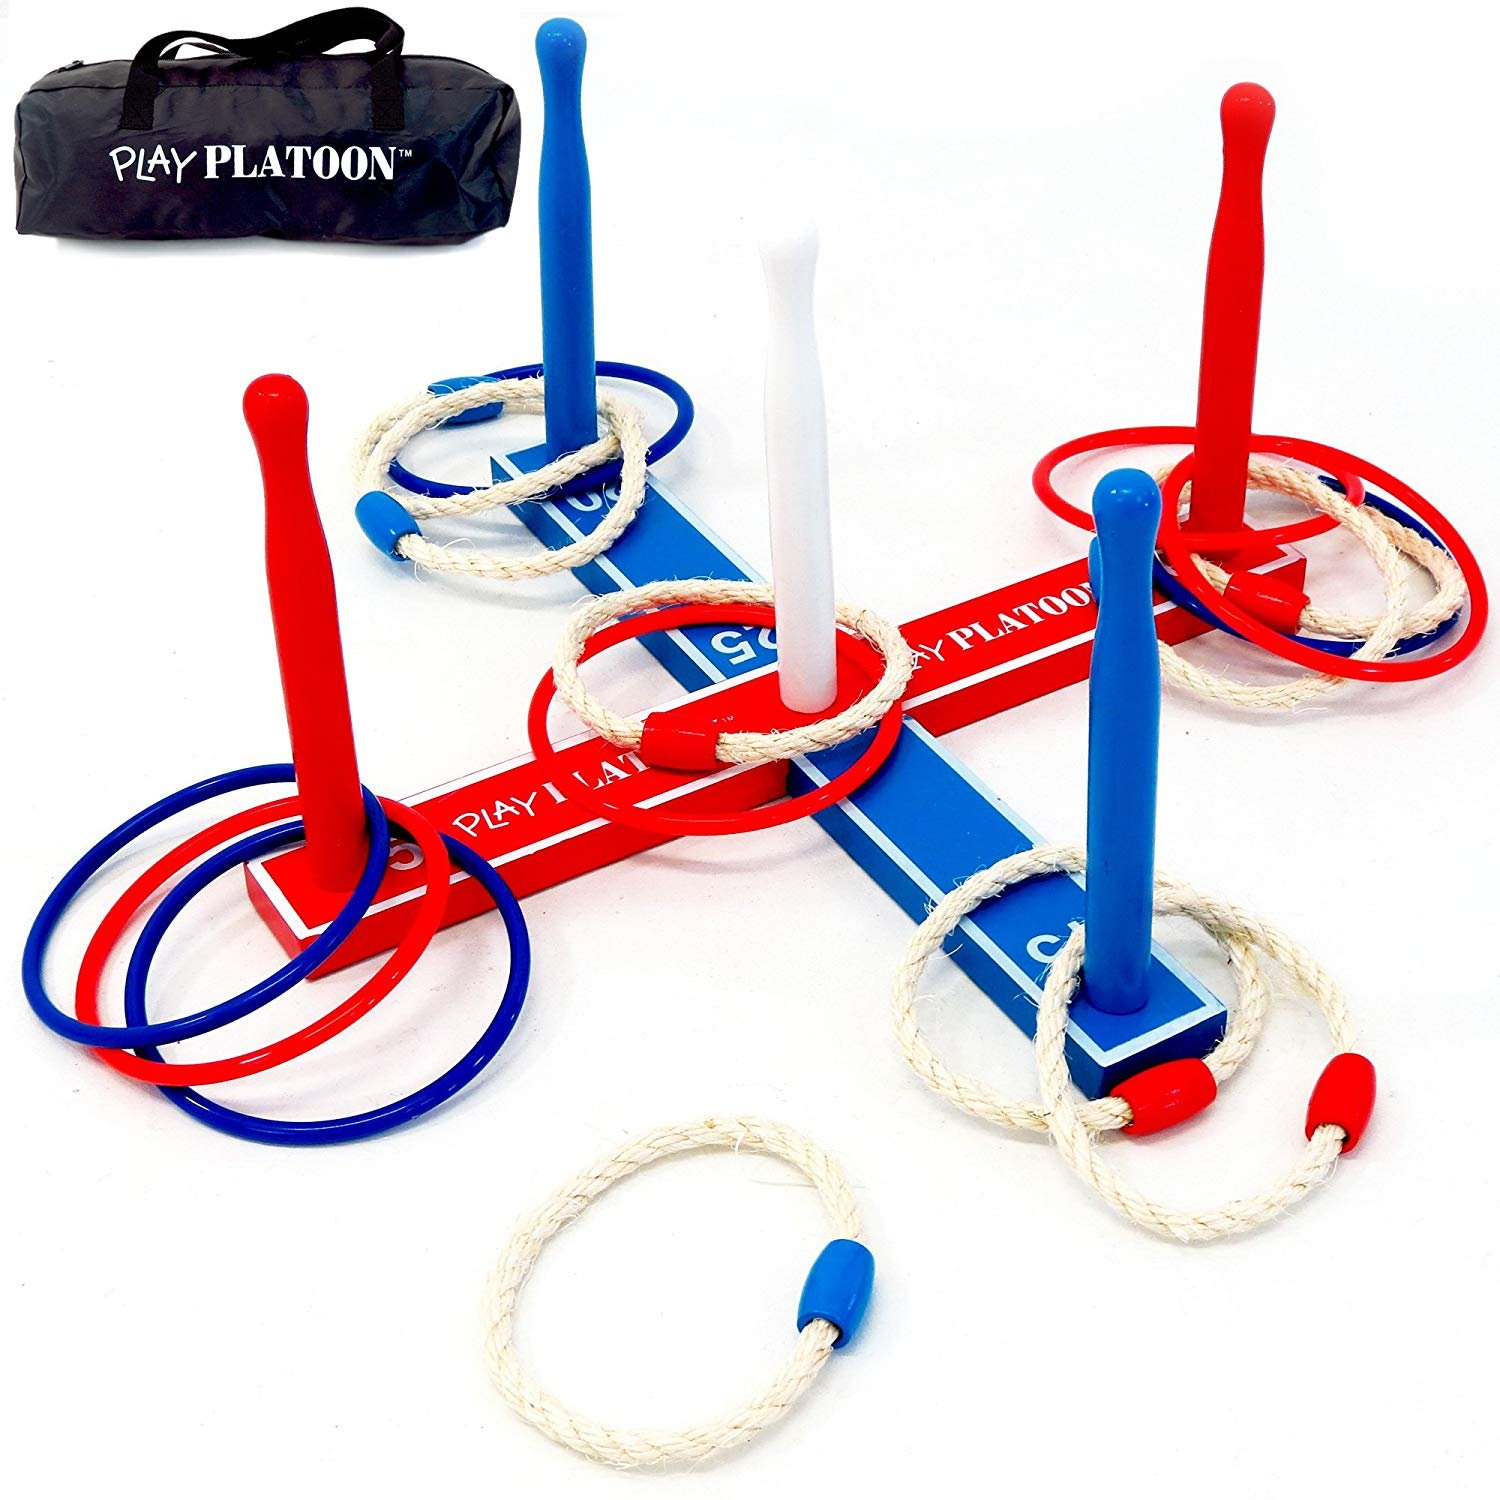 Premium Ring Toss Game Set - Includes 8 Rope & 8 Plastic Rings - Improves Hand-Eye Coordination by Play Platoon